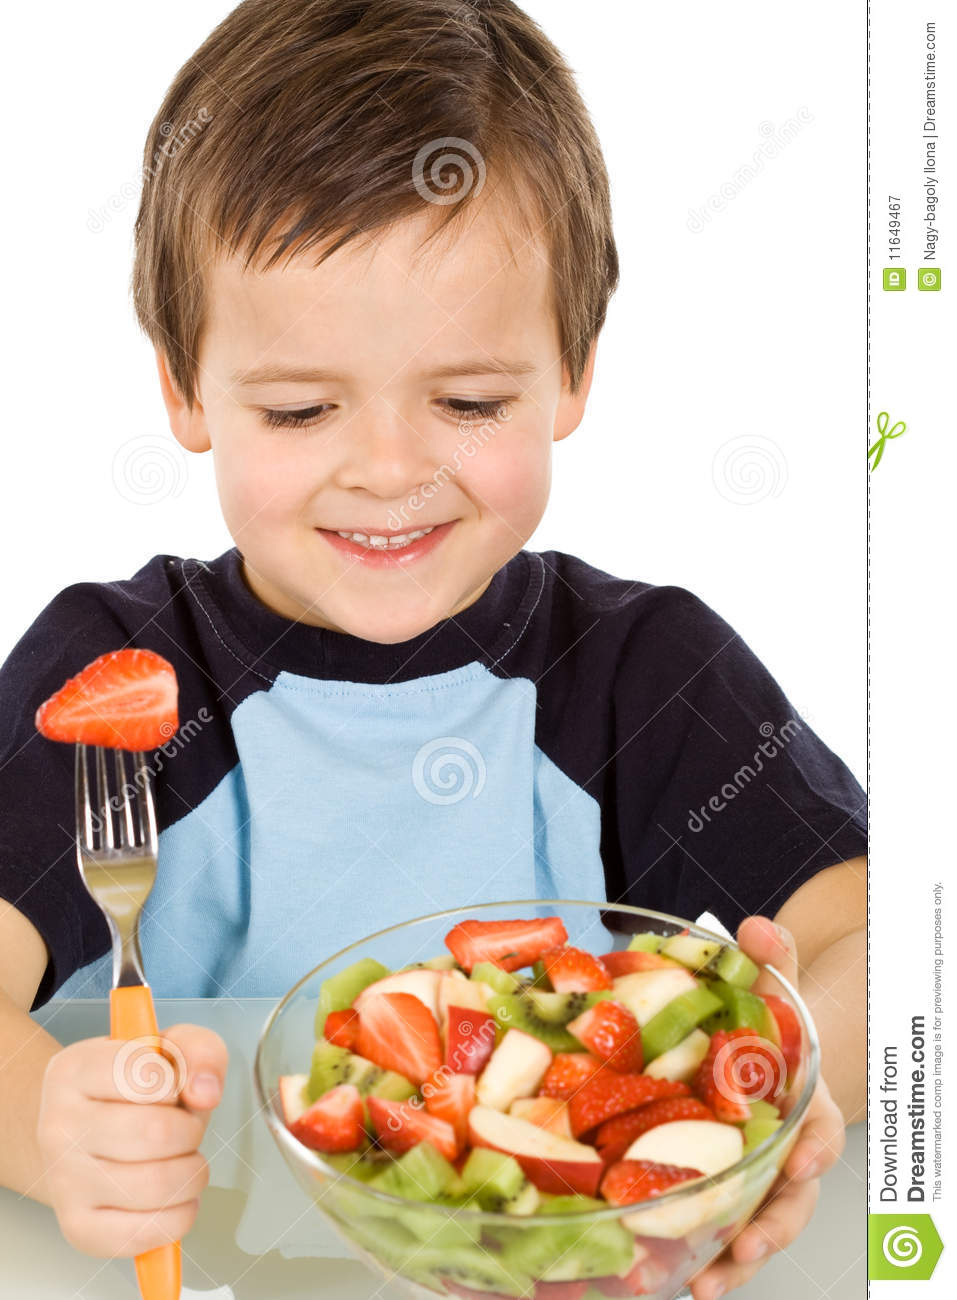 Boy About To Eat A Large Bowl Of Fresh Fruit Salad Royalty Free Stock ...